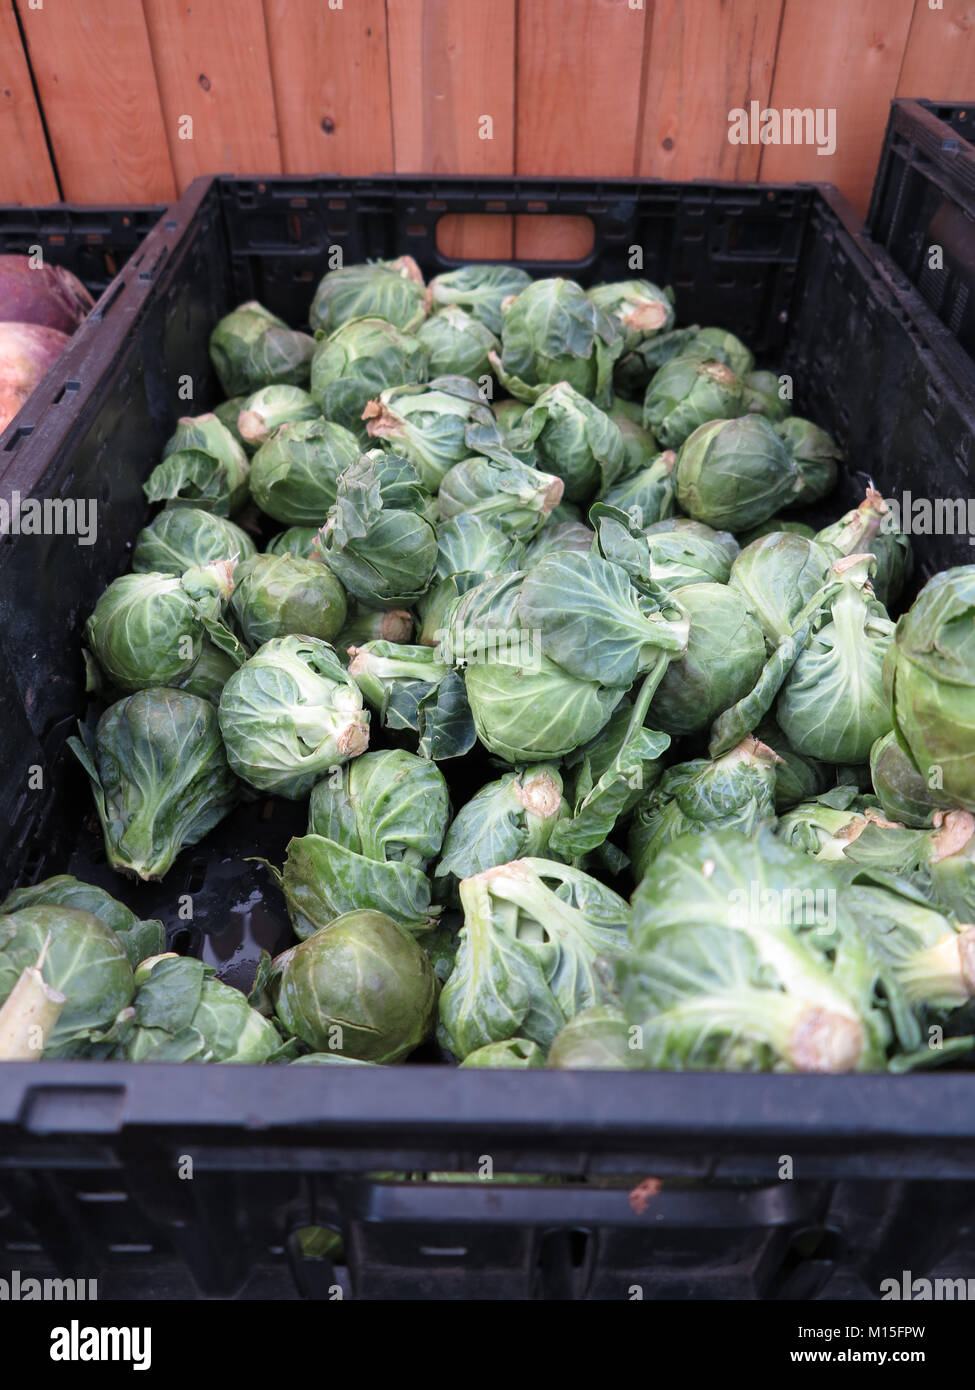 Brussel Sprouts in Basket at Farmer's Market - Stock Image